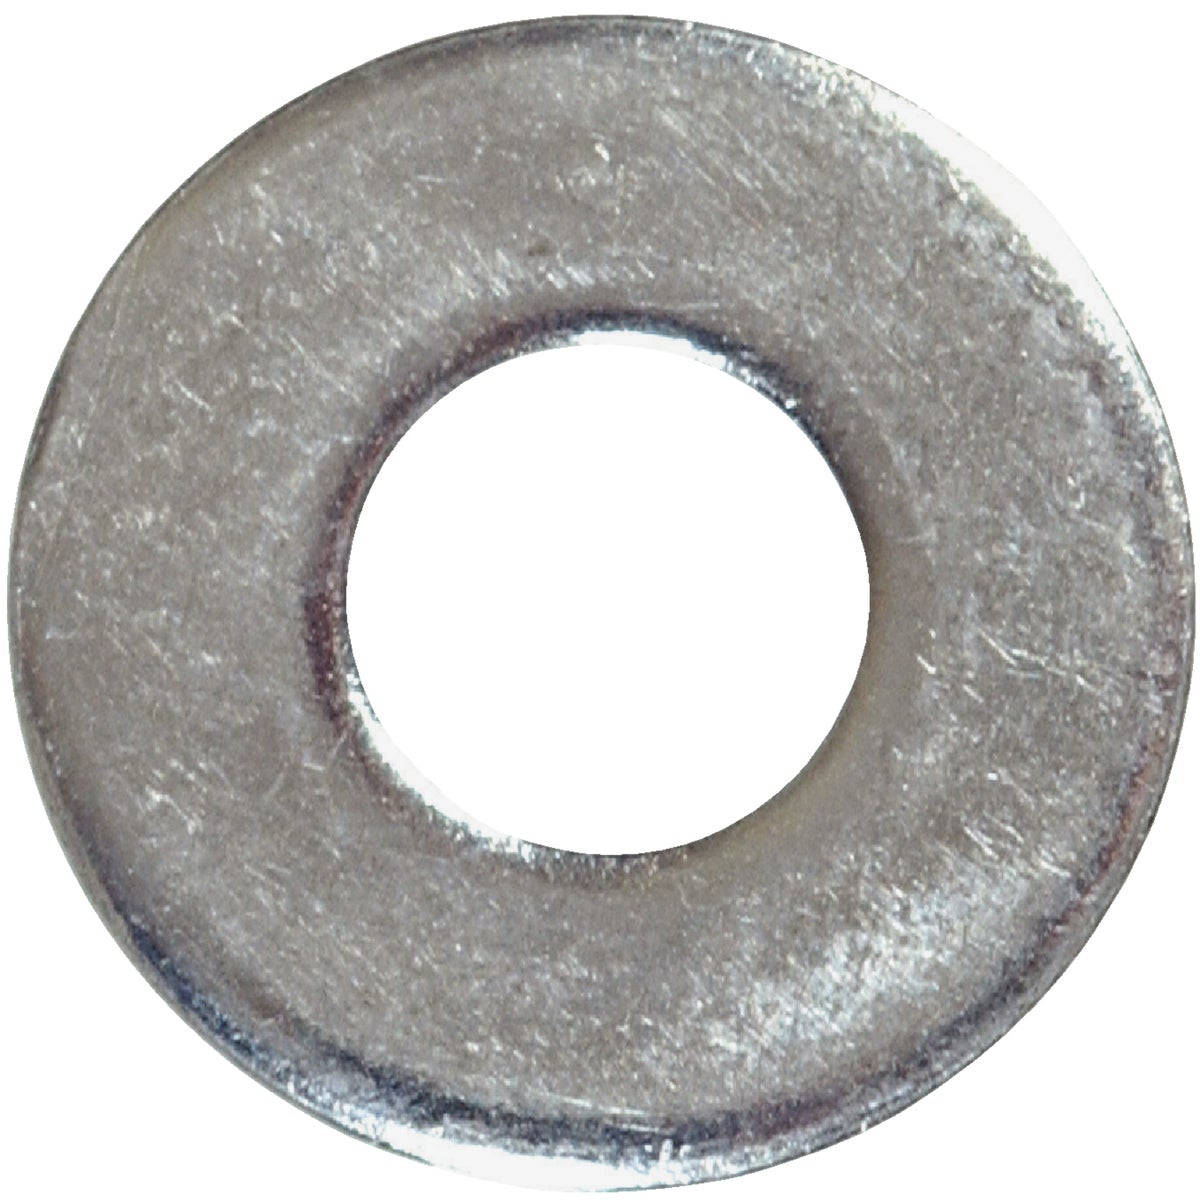 "5LB 1-1/4""USS FLT WASHER - 270039 by Hillman Fastener"